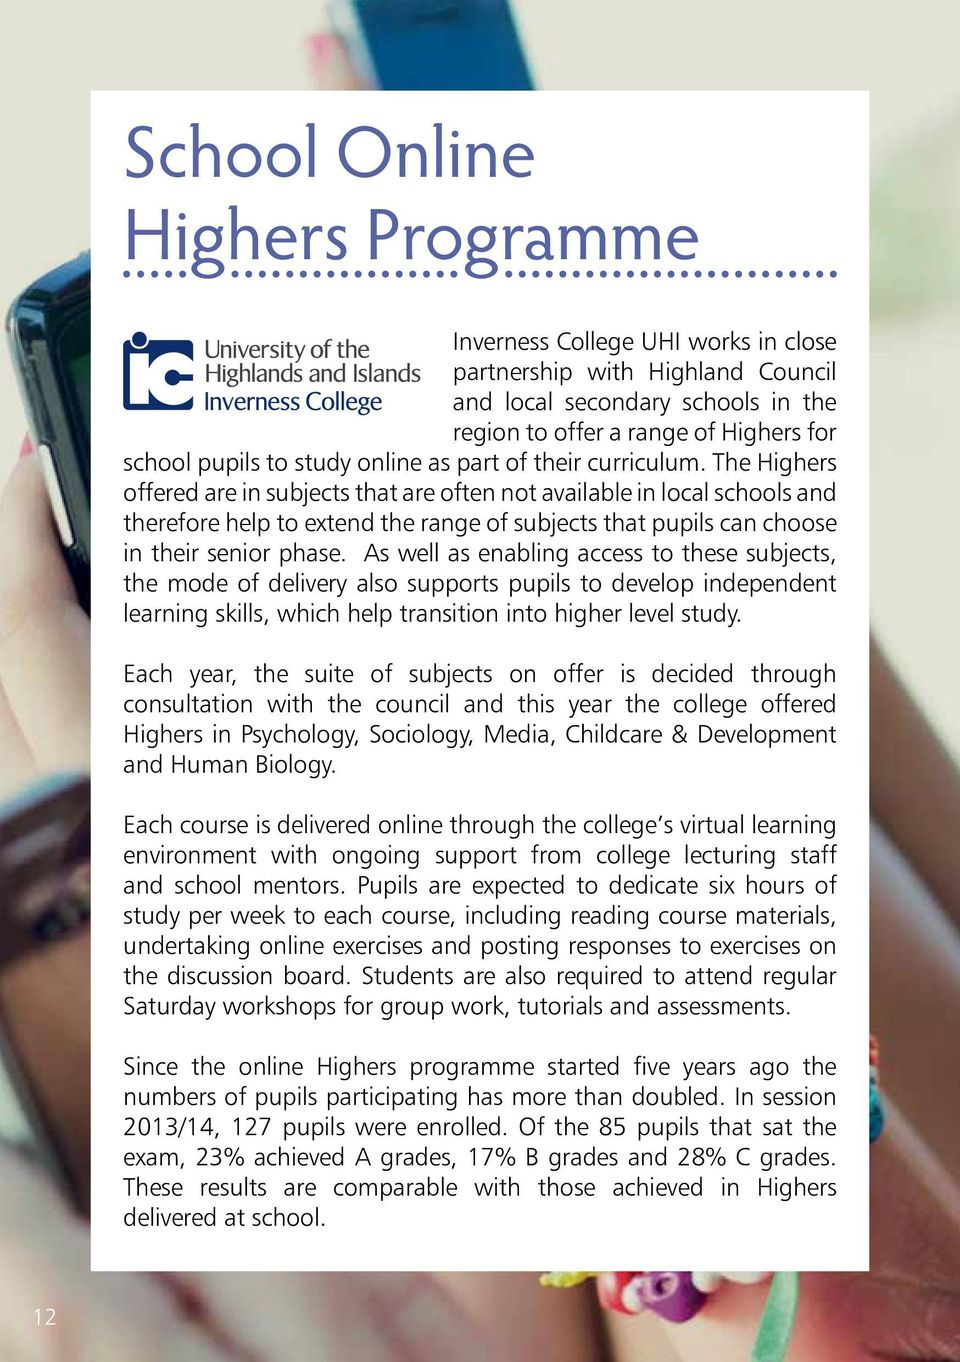 The Highers offered are in subjects that are often not available in local schools and therefore help to extend the range of subjects that pupils can choose in their senior phase.